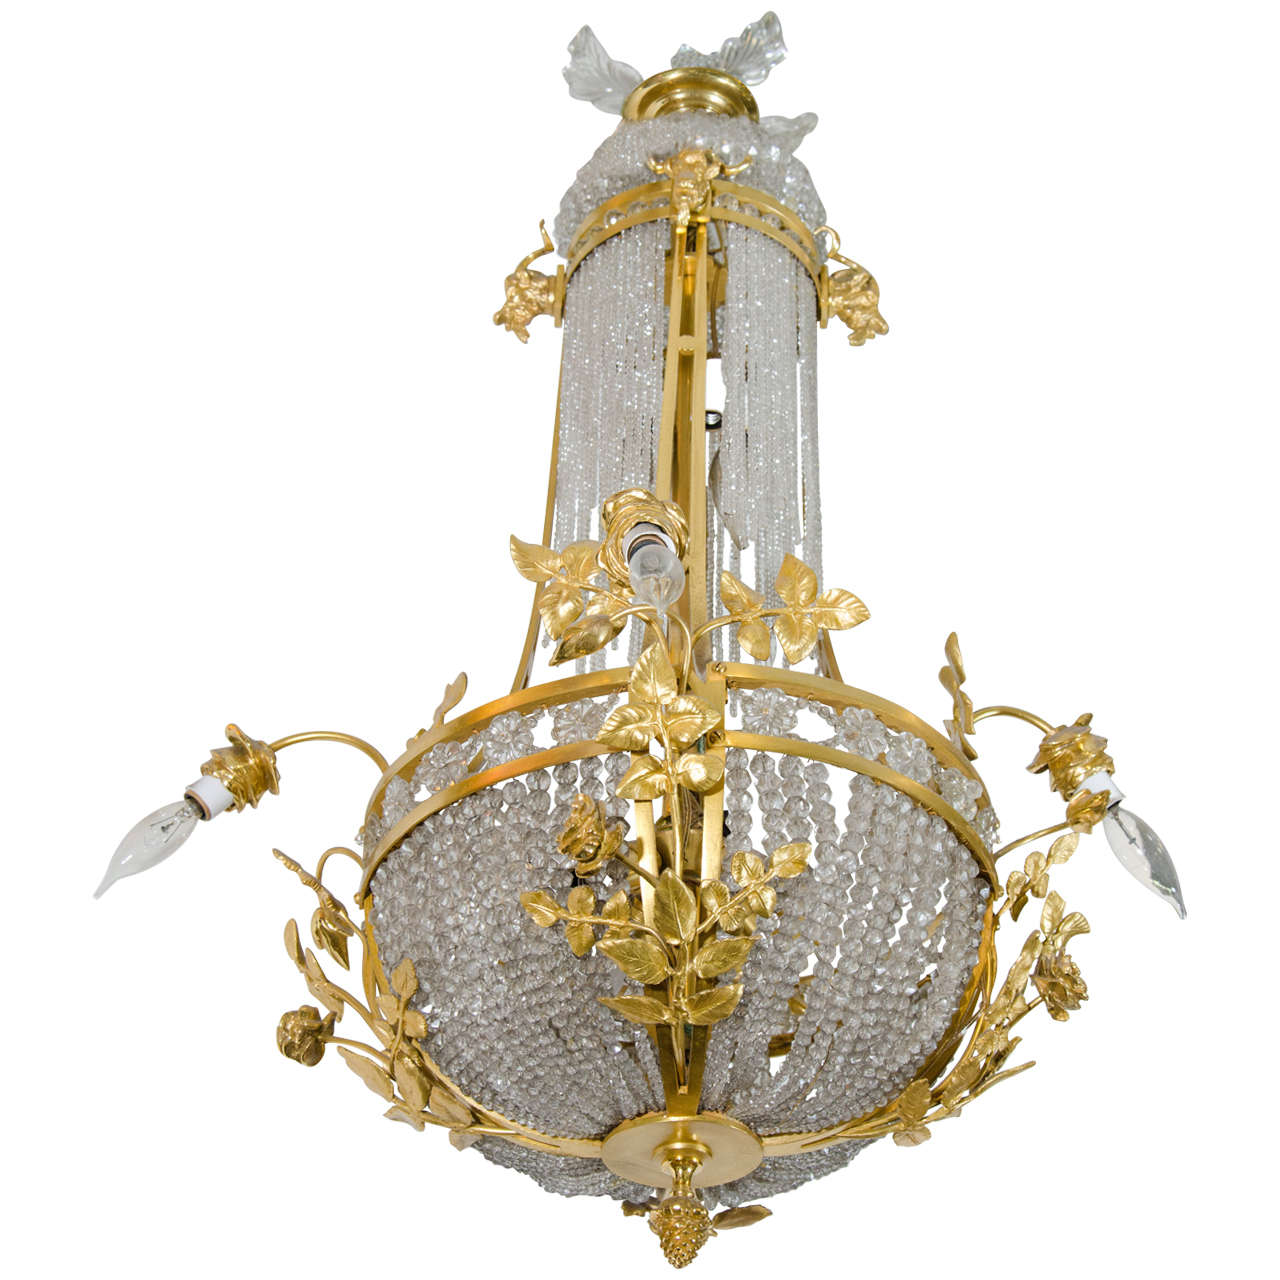 Antique French Gilt Bronze and Crystal Chandelier For Sale - Antique French Gilt Bronze And Crystal Chandelier At 1stdibs